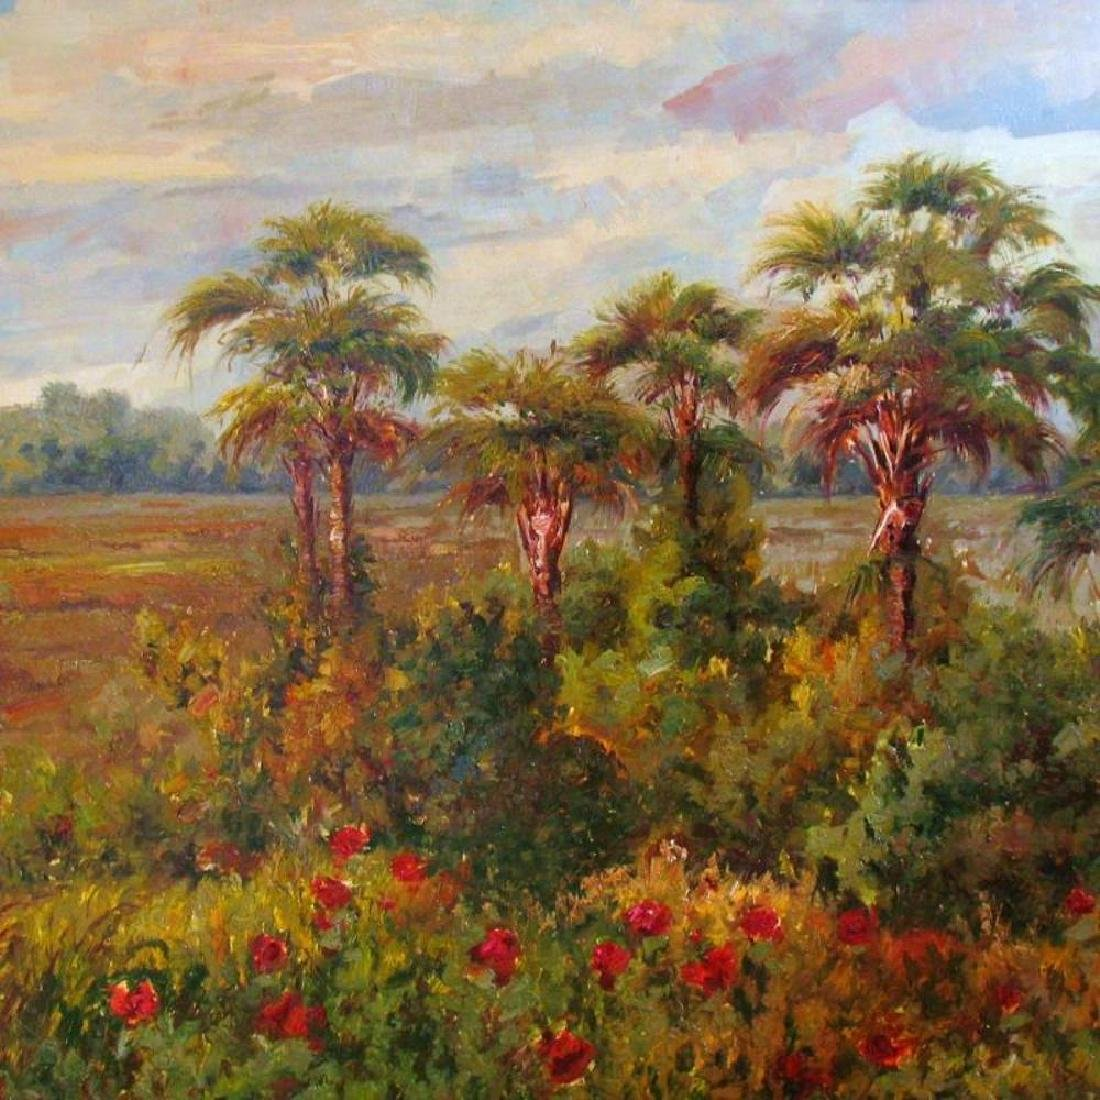 Impressionism Colorful Landscape Painting on Canvas - 3